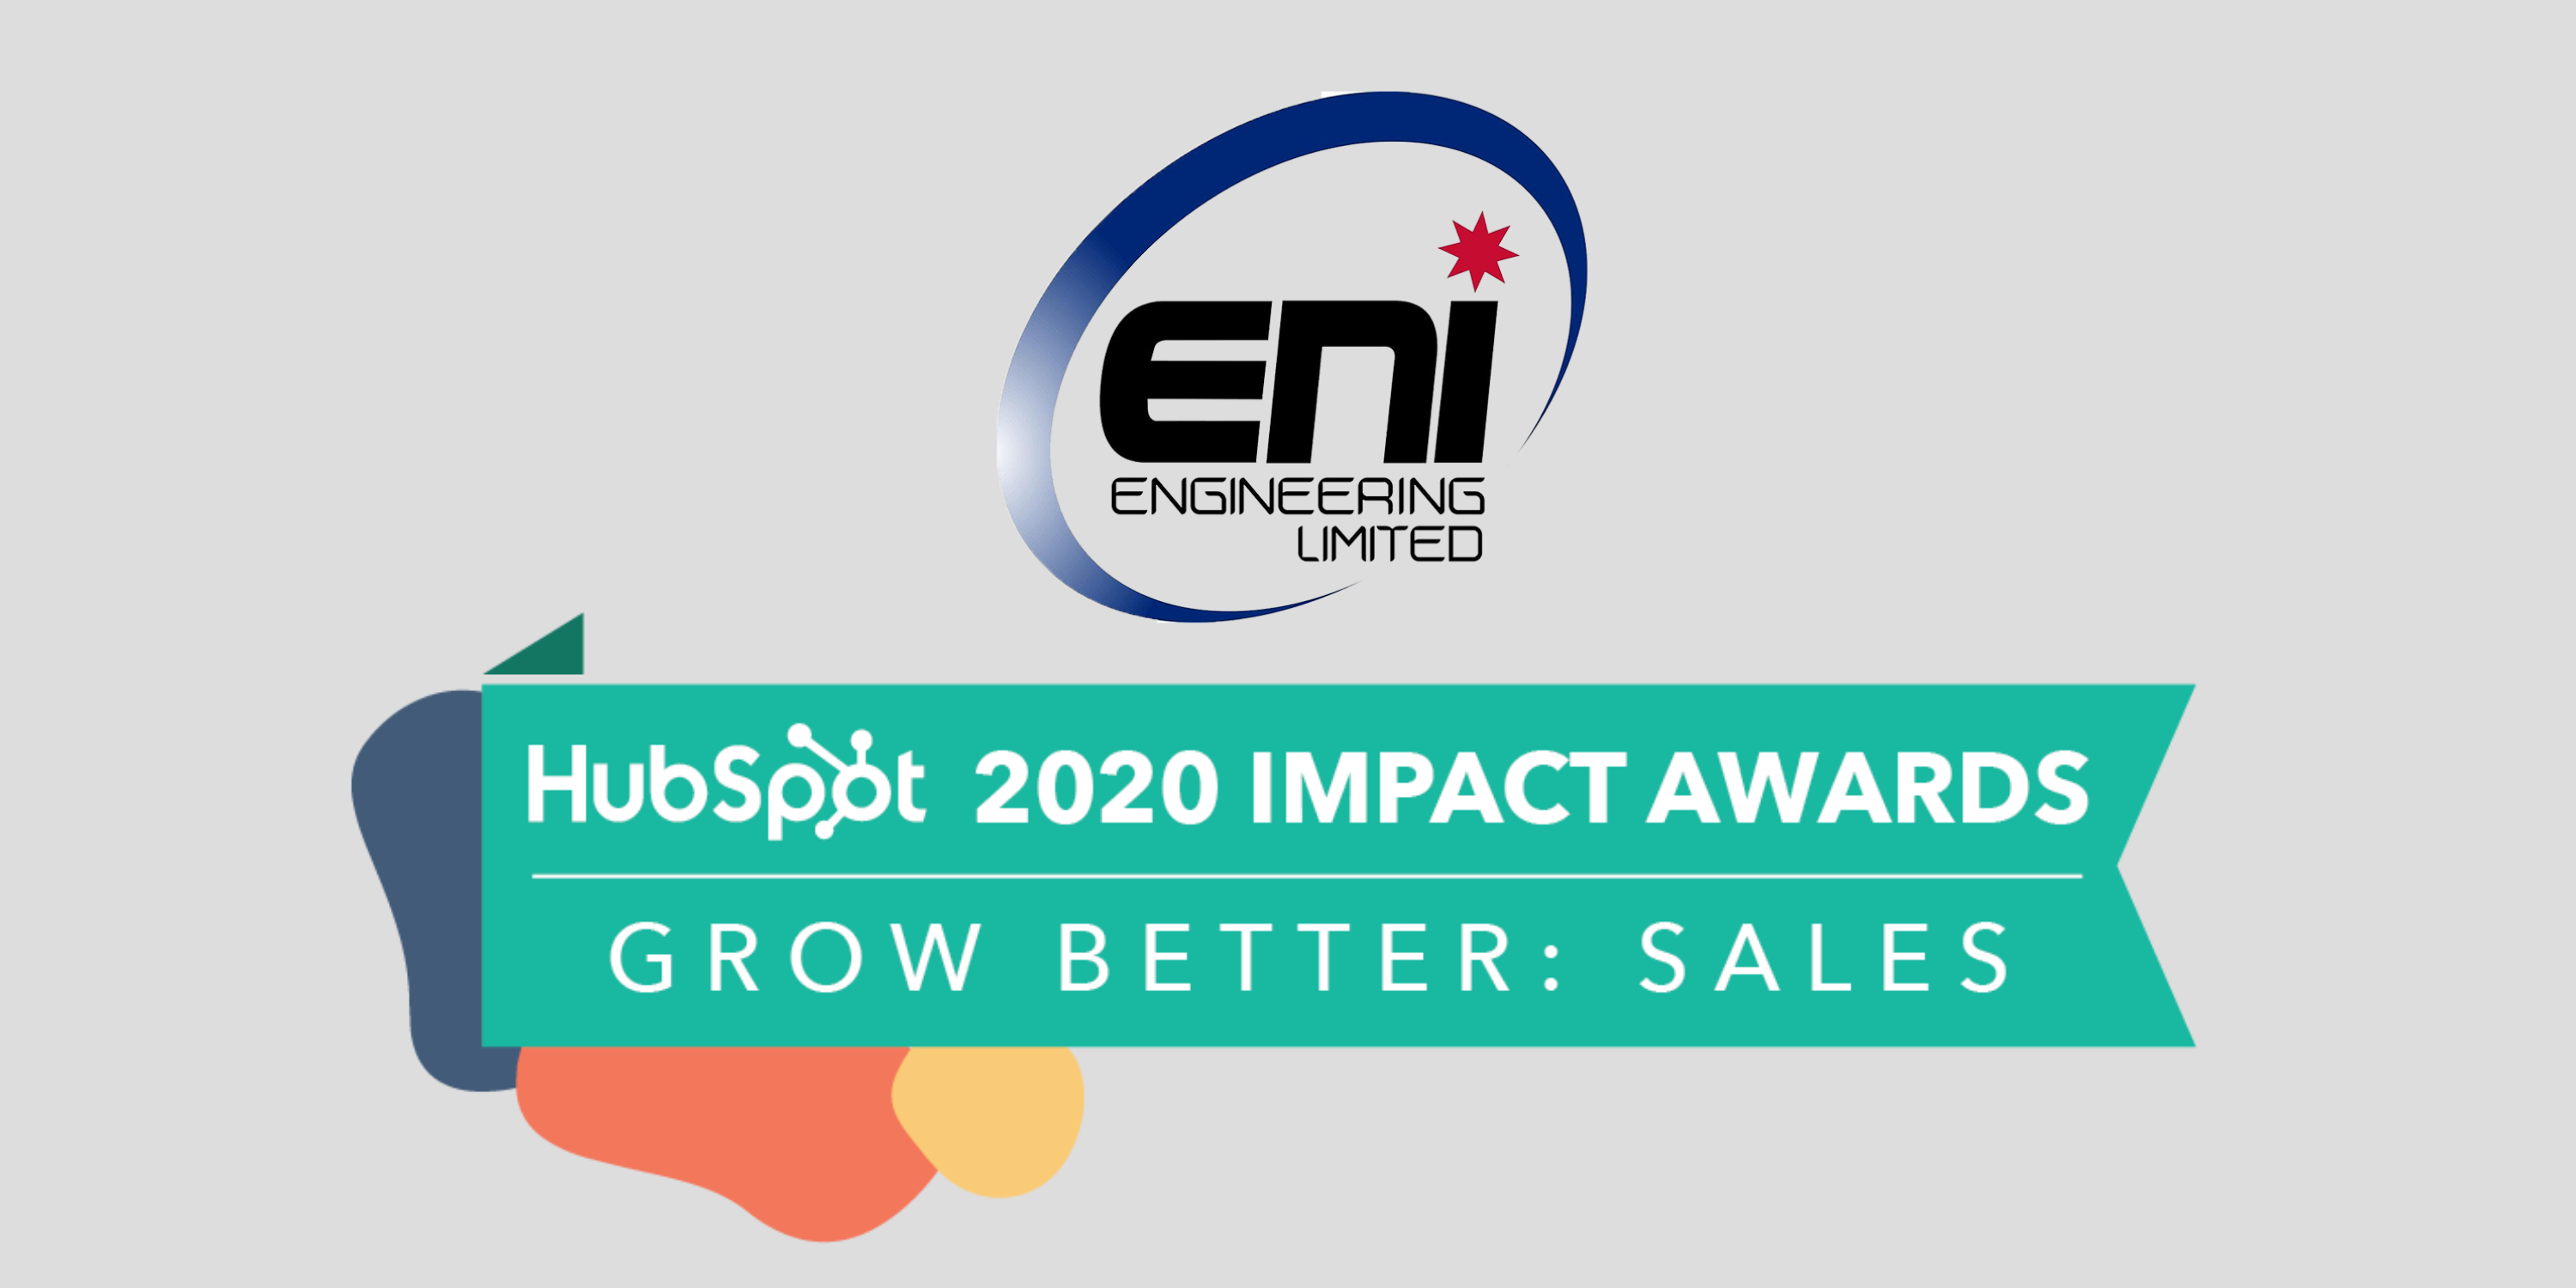 Concentrate & ENI Engineering HubSpot Impact Award - Grow Better Sales 2020